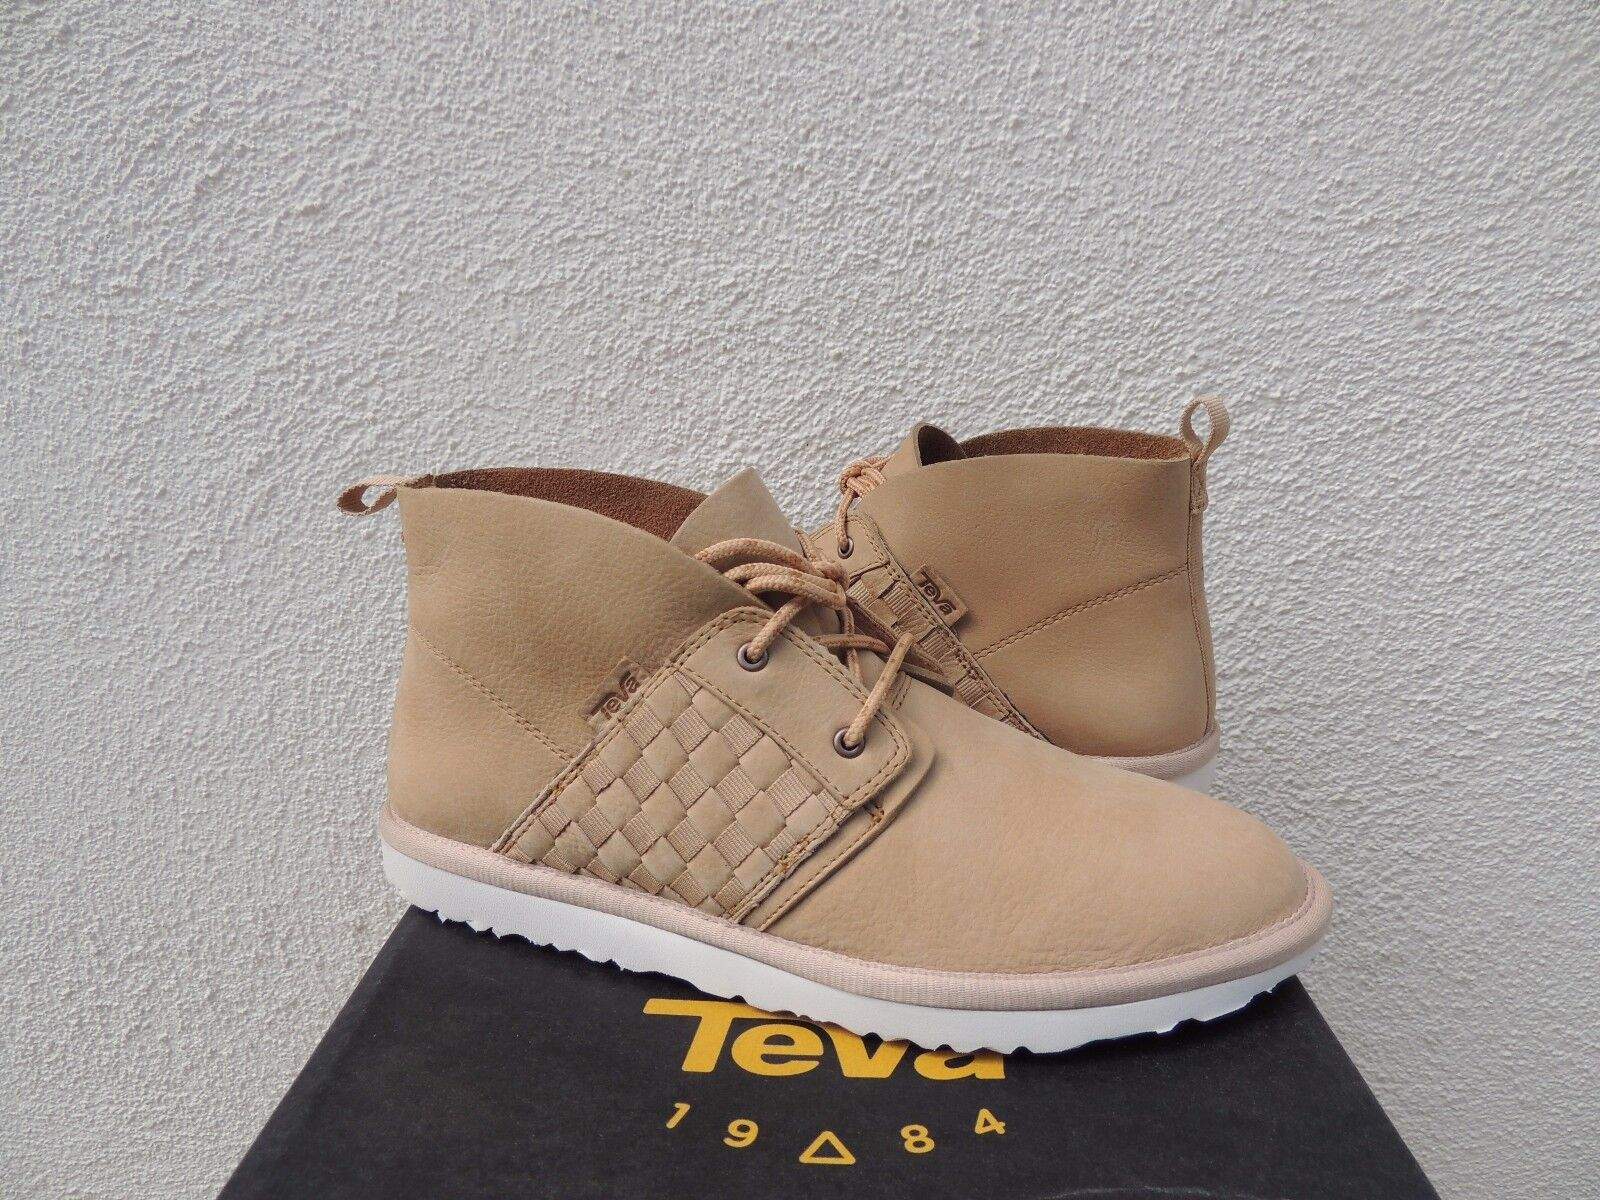 TEVA CorMAR SOFT TAN LEATHER CHUKKA LACE-UP ANKLE bottes, US 7  EUR 38  NWT